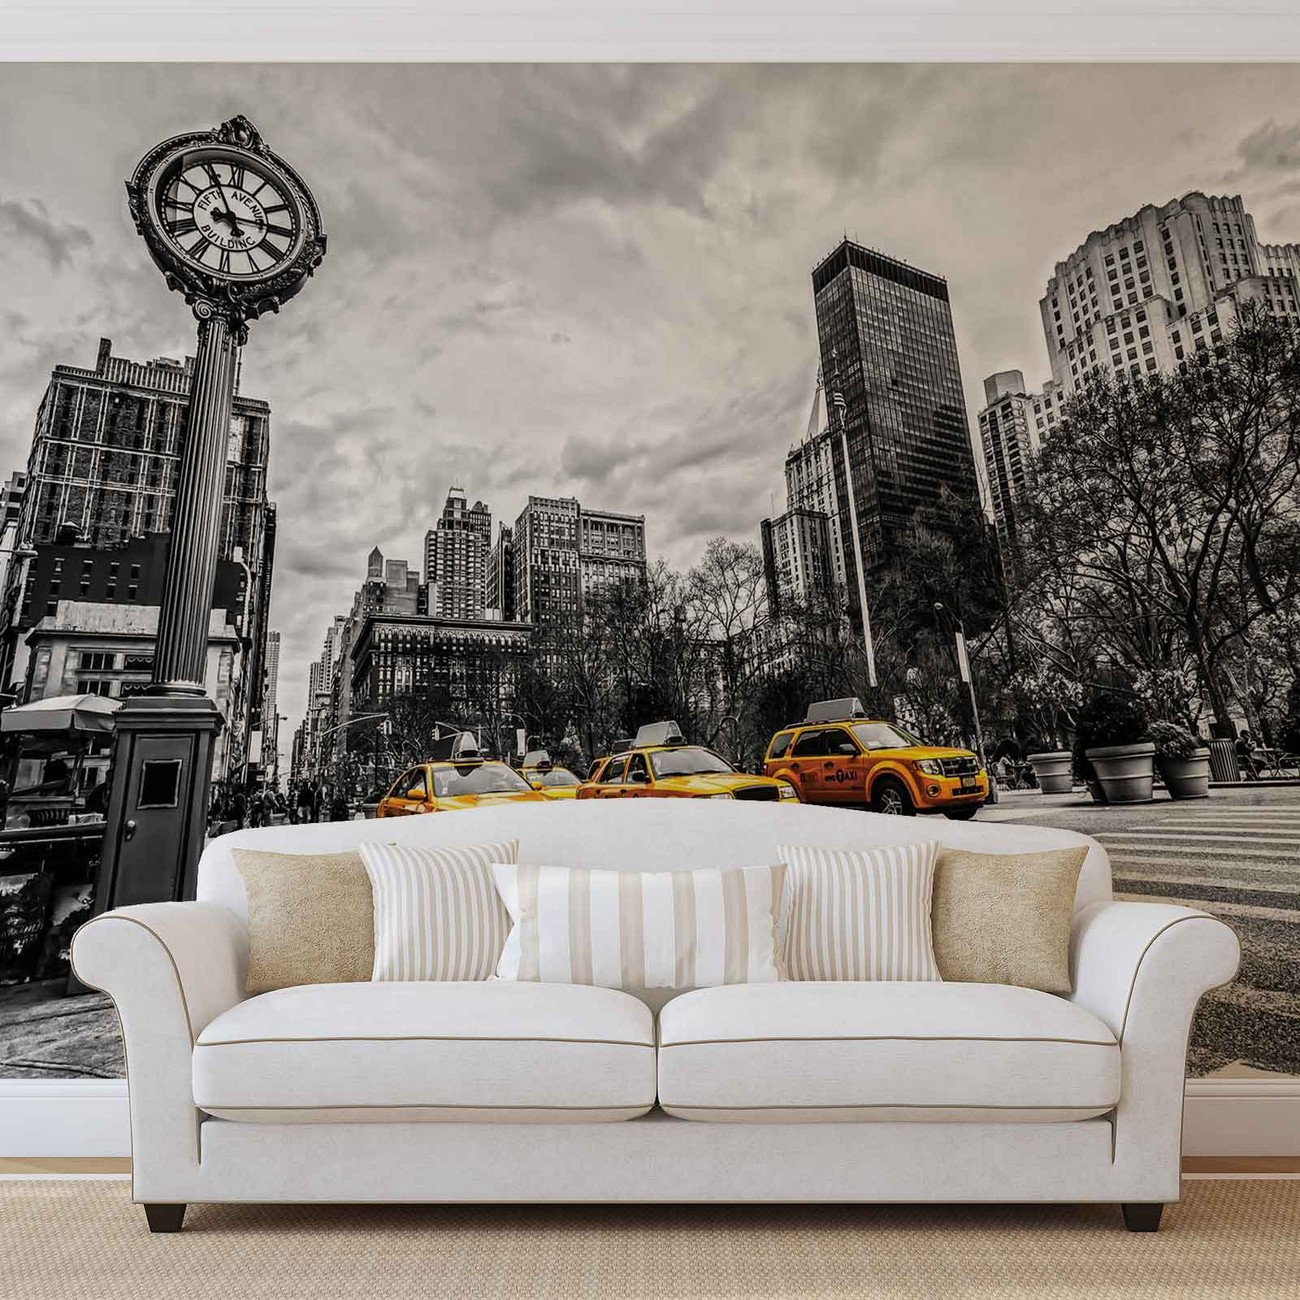 new york city cabs wall paper mural buy at europosters new york city cabs wallpaper mural facebook google pinterest price from